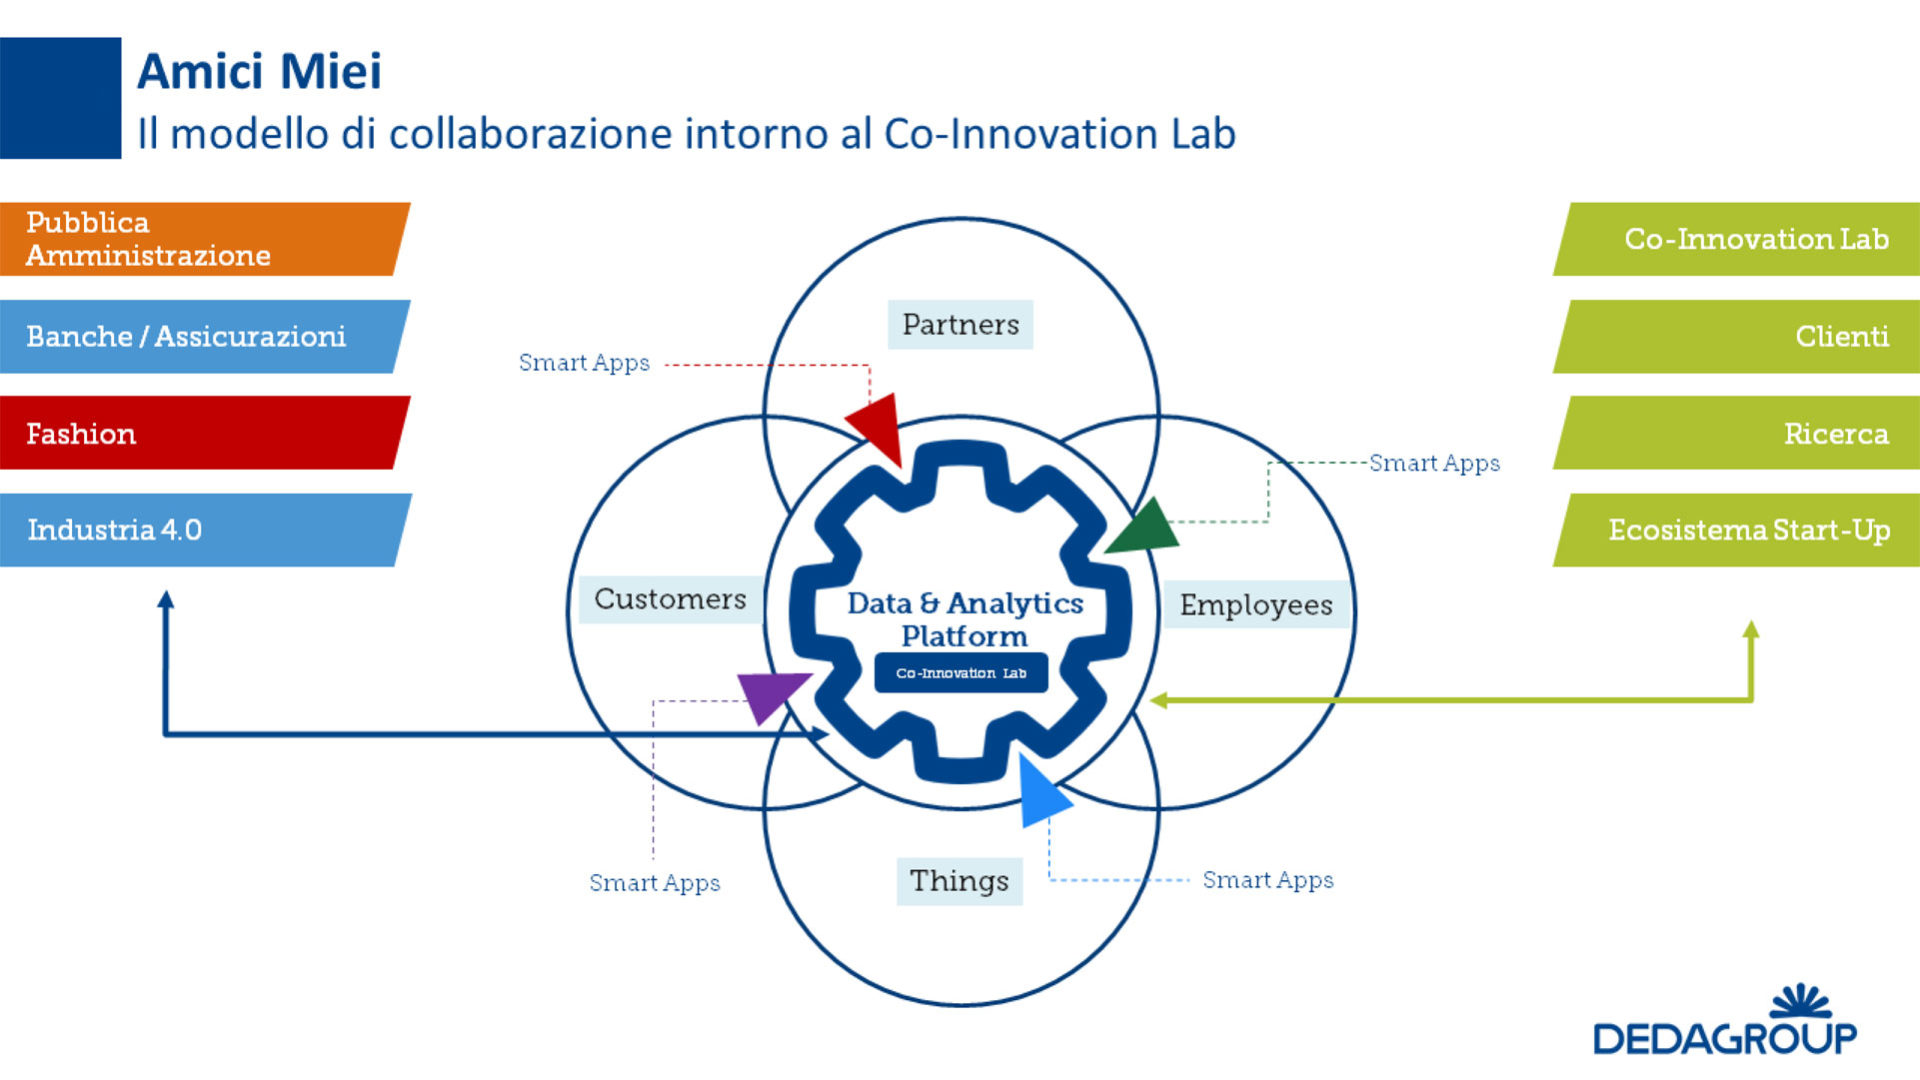 Schema del modello di collaborazione intorno al Co-innovation Lab - Fonte: Dedagroup